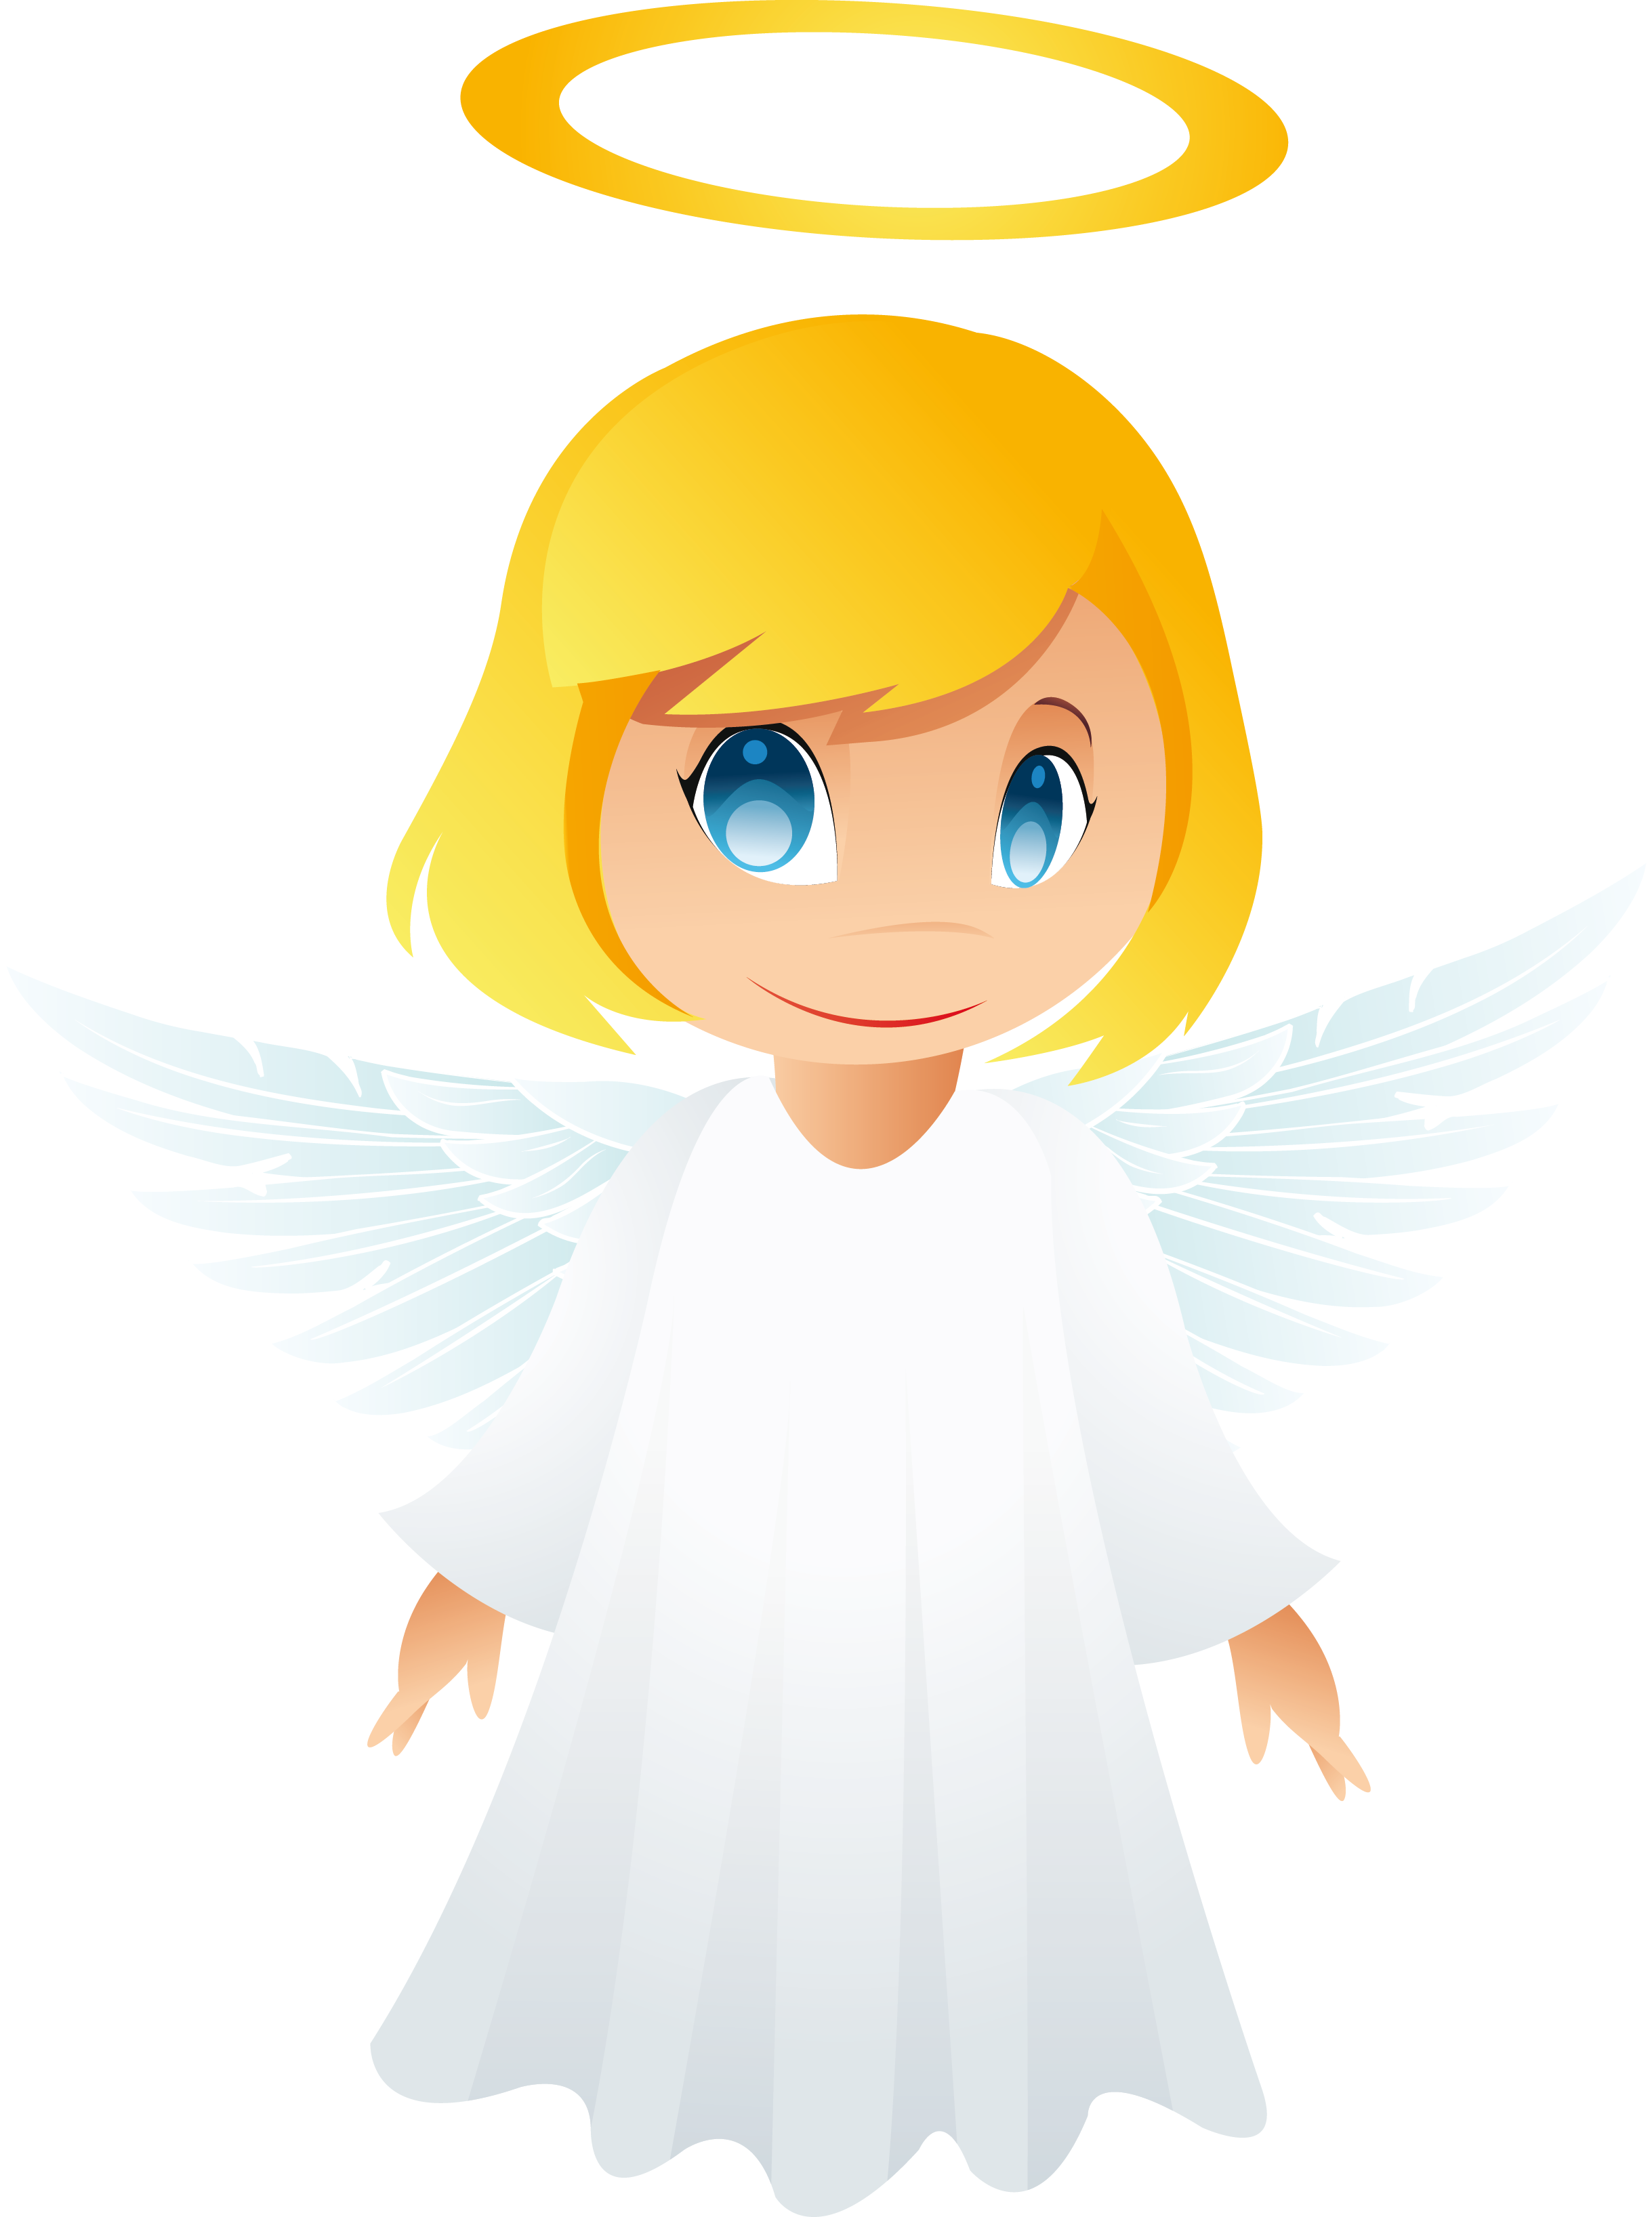 angel clipart free graphics of cherubs and angels the cliparts rh pinterest com free clip art angels wings free clipart angels for labels